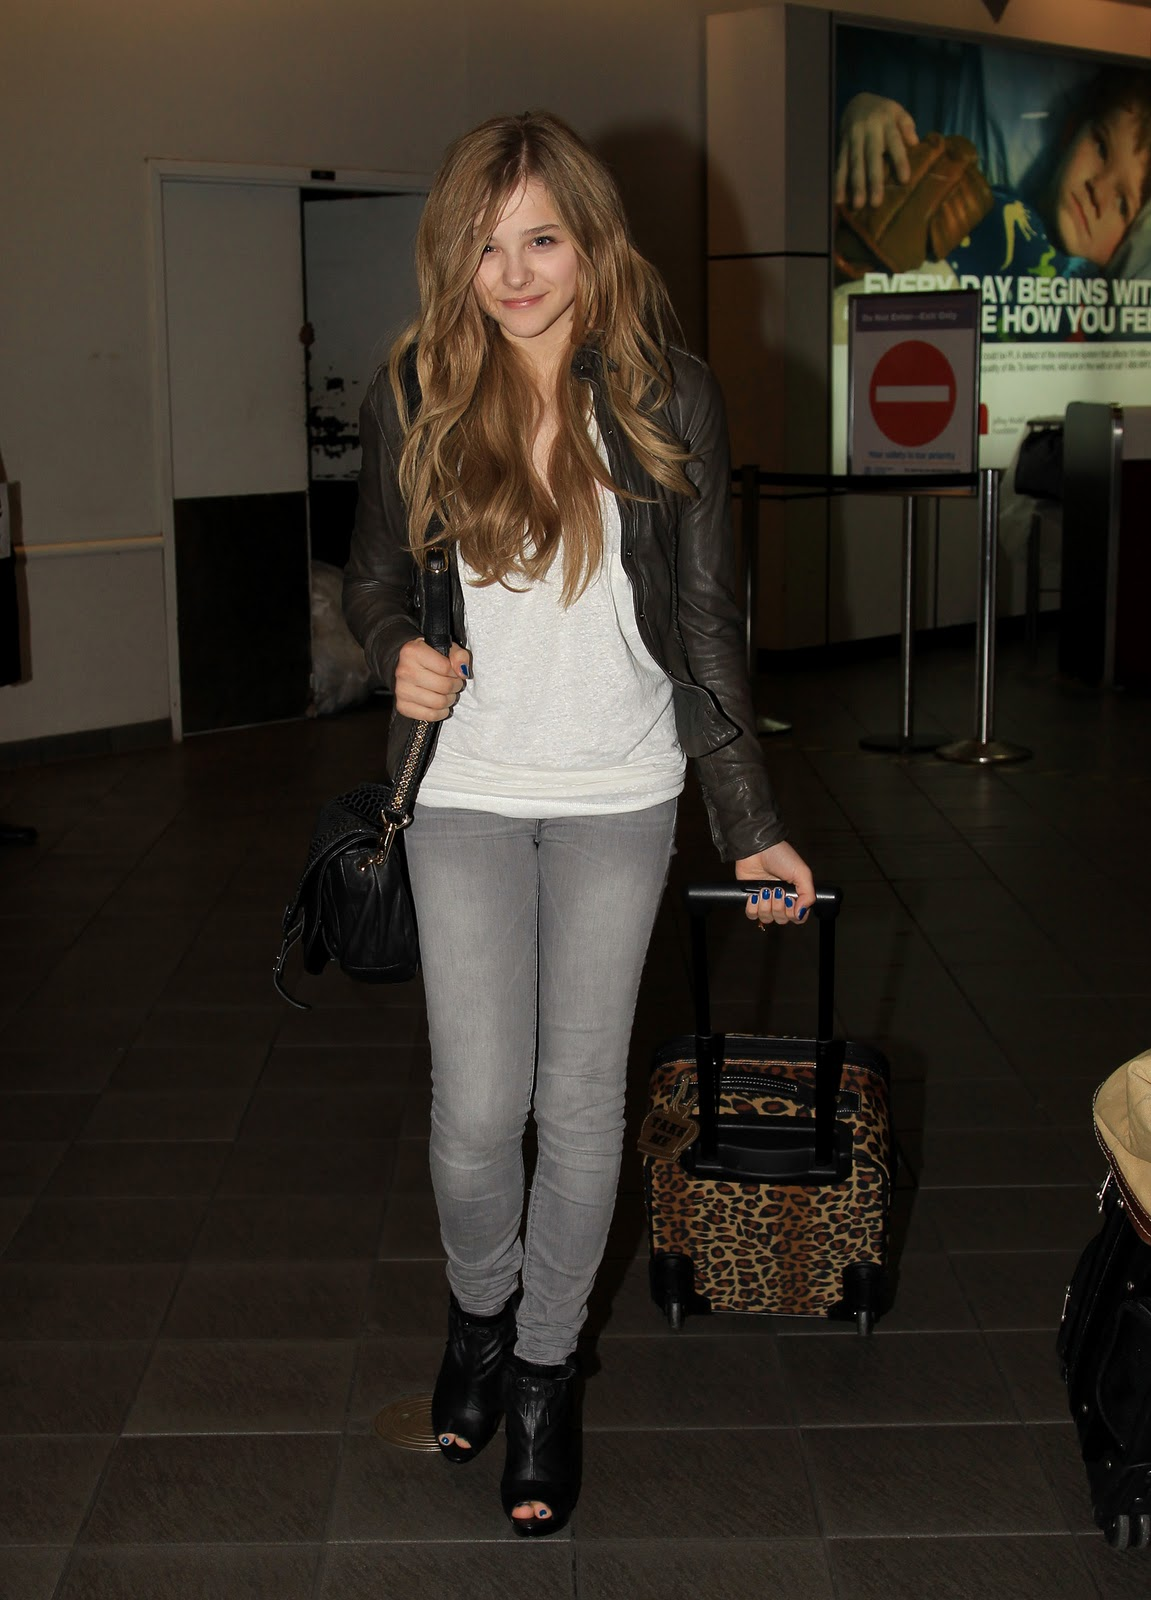 http://1.bp.blogspot.com/-_uWHmbzK6BY/TY8lZ-dRp1I/AAAAAAAABsk/CCmt6LN4z70/s1600/Chloe_Moretz_and_brother_Trevor_walk_through_LaGuardia_airport_in_New_York_1_122_473lo.jpg